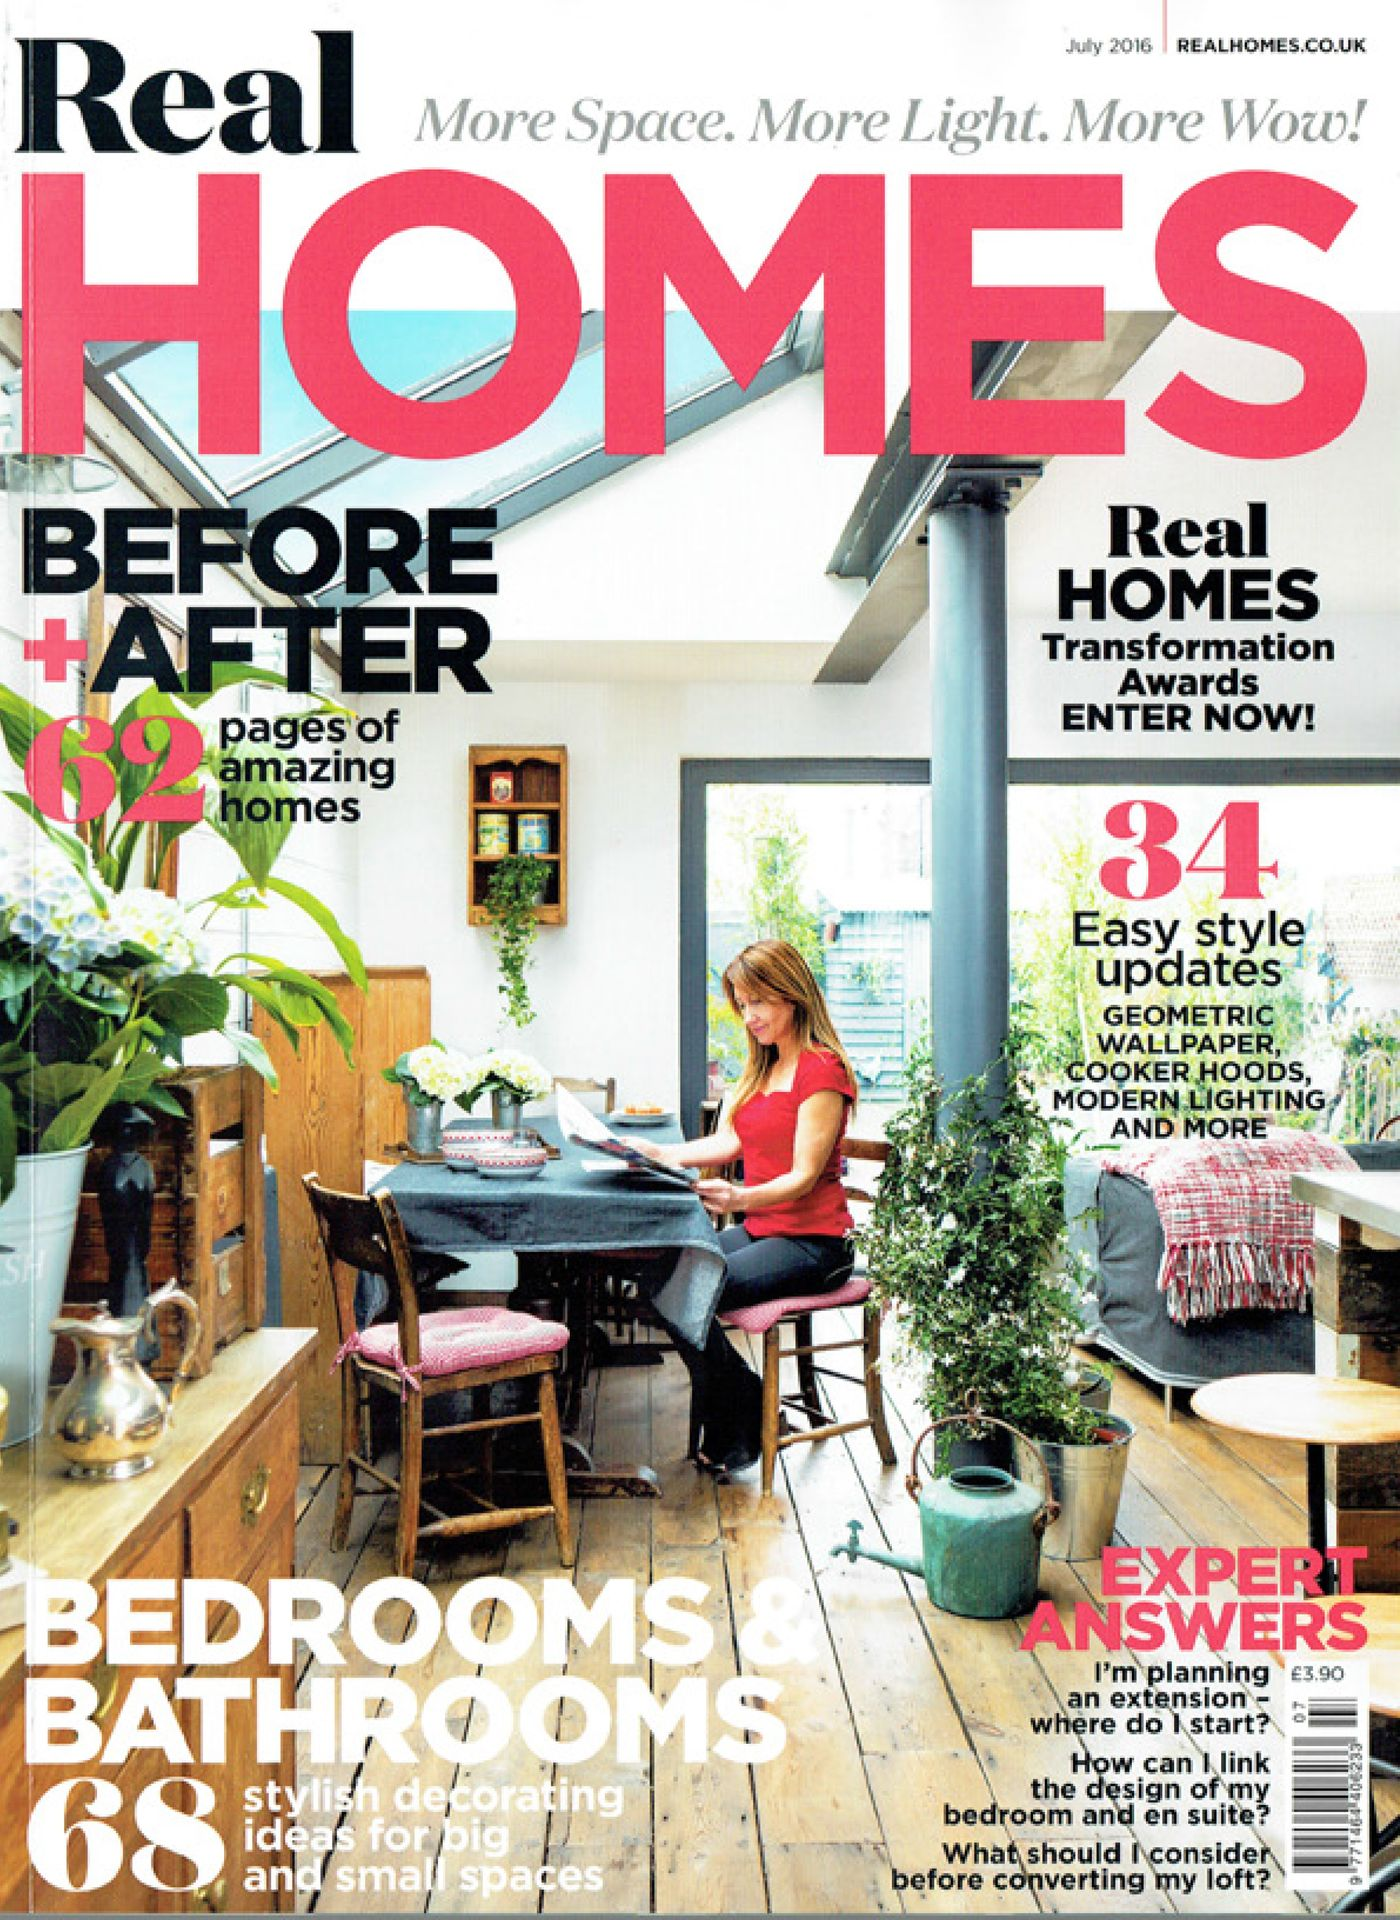 Build Team Featured in Real Homes